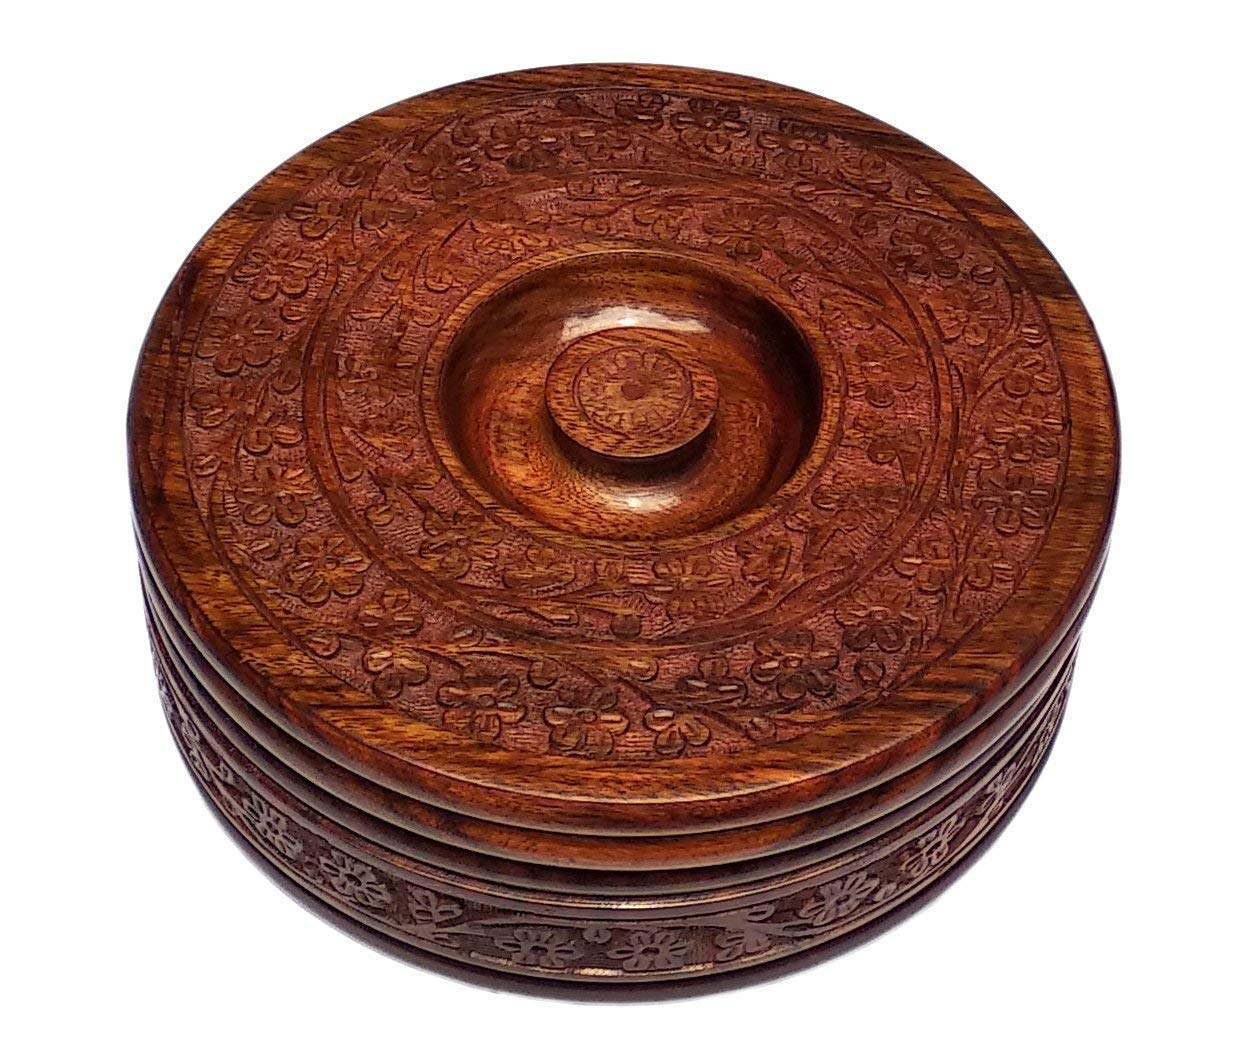 Deuse Casserole Wooden Box Handcrafted Pot Serving Bowl Chapati Box